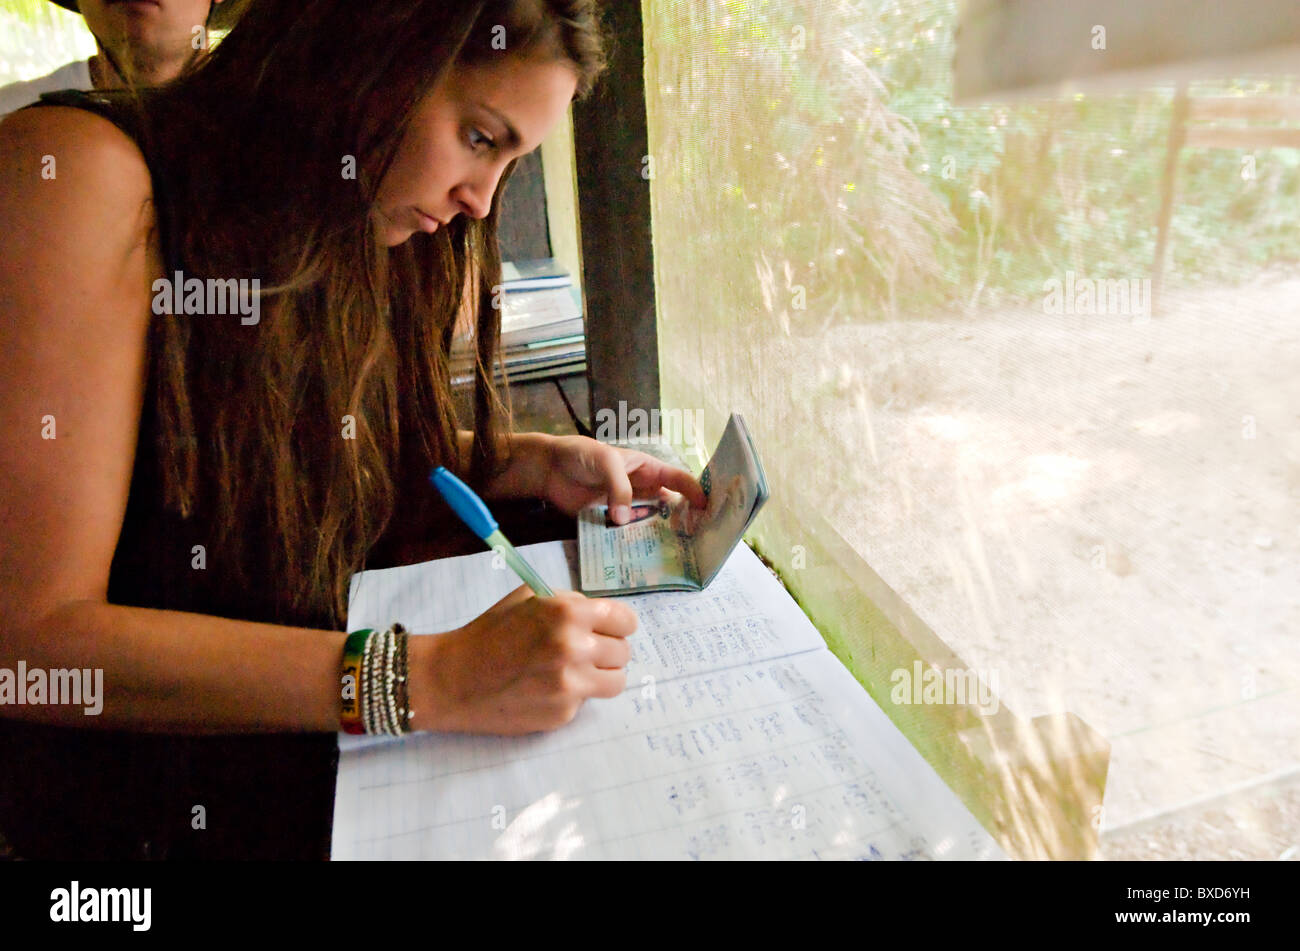 A young woman signs a logbook using her passport in the amazon rainforest. - Stock Image